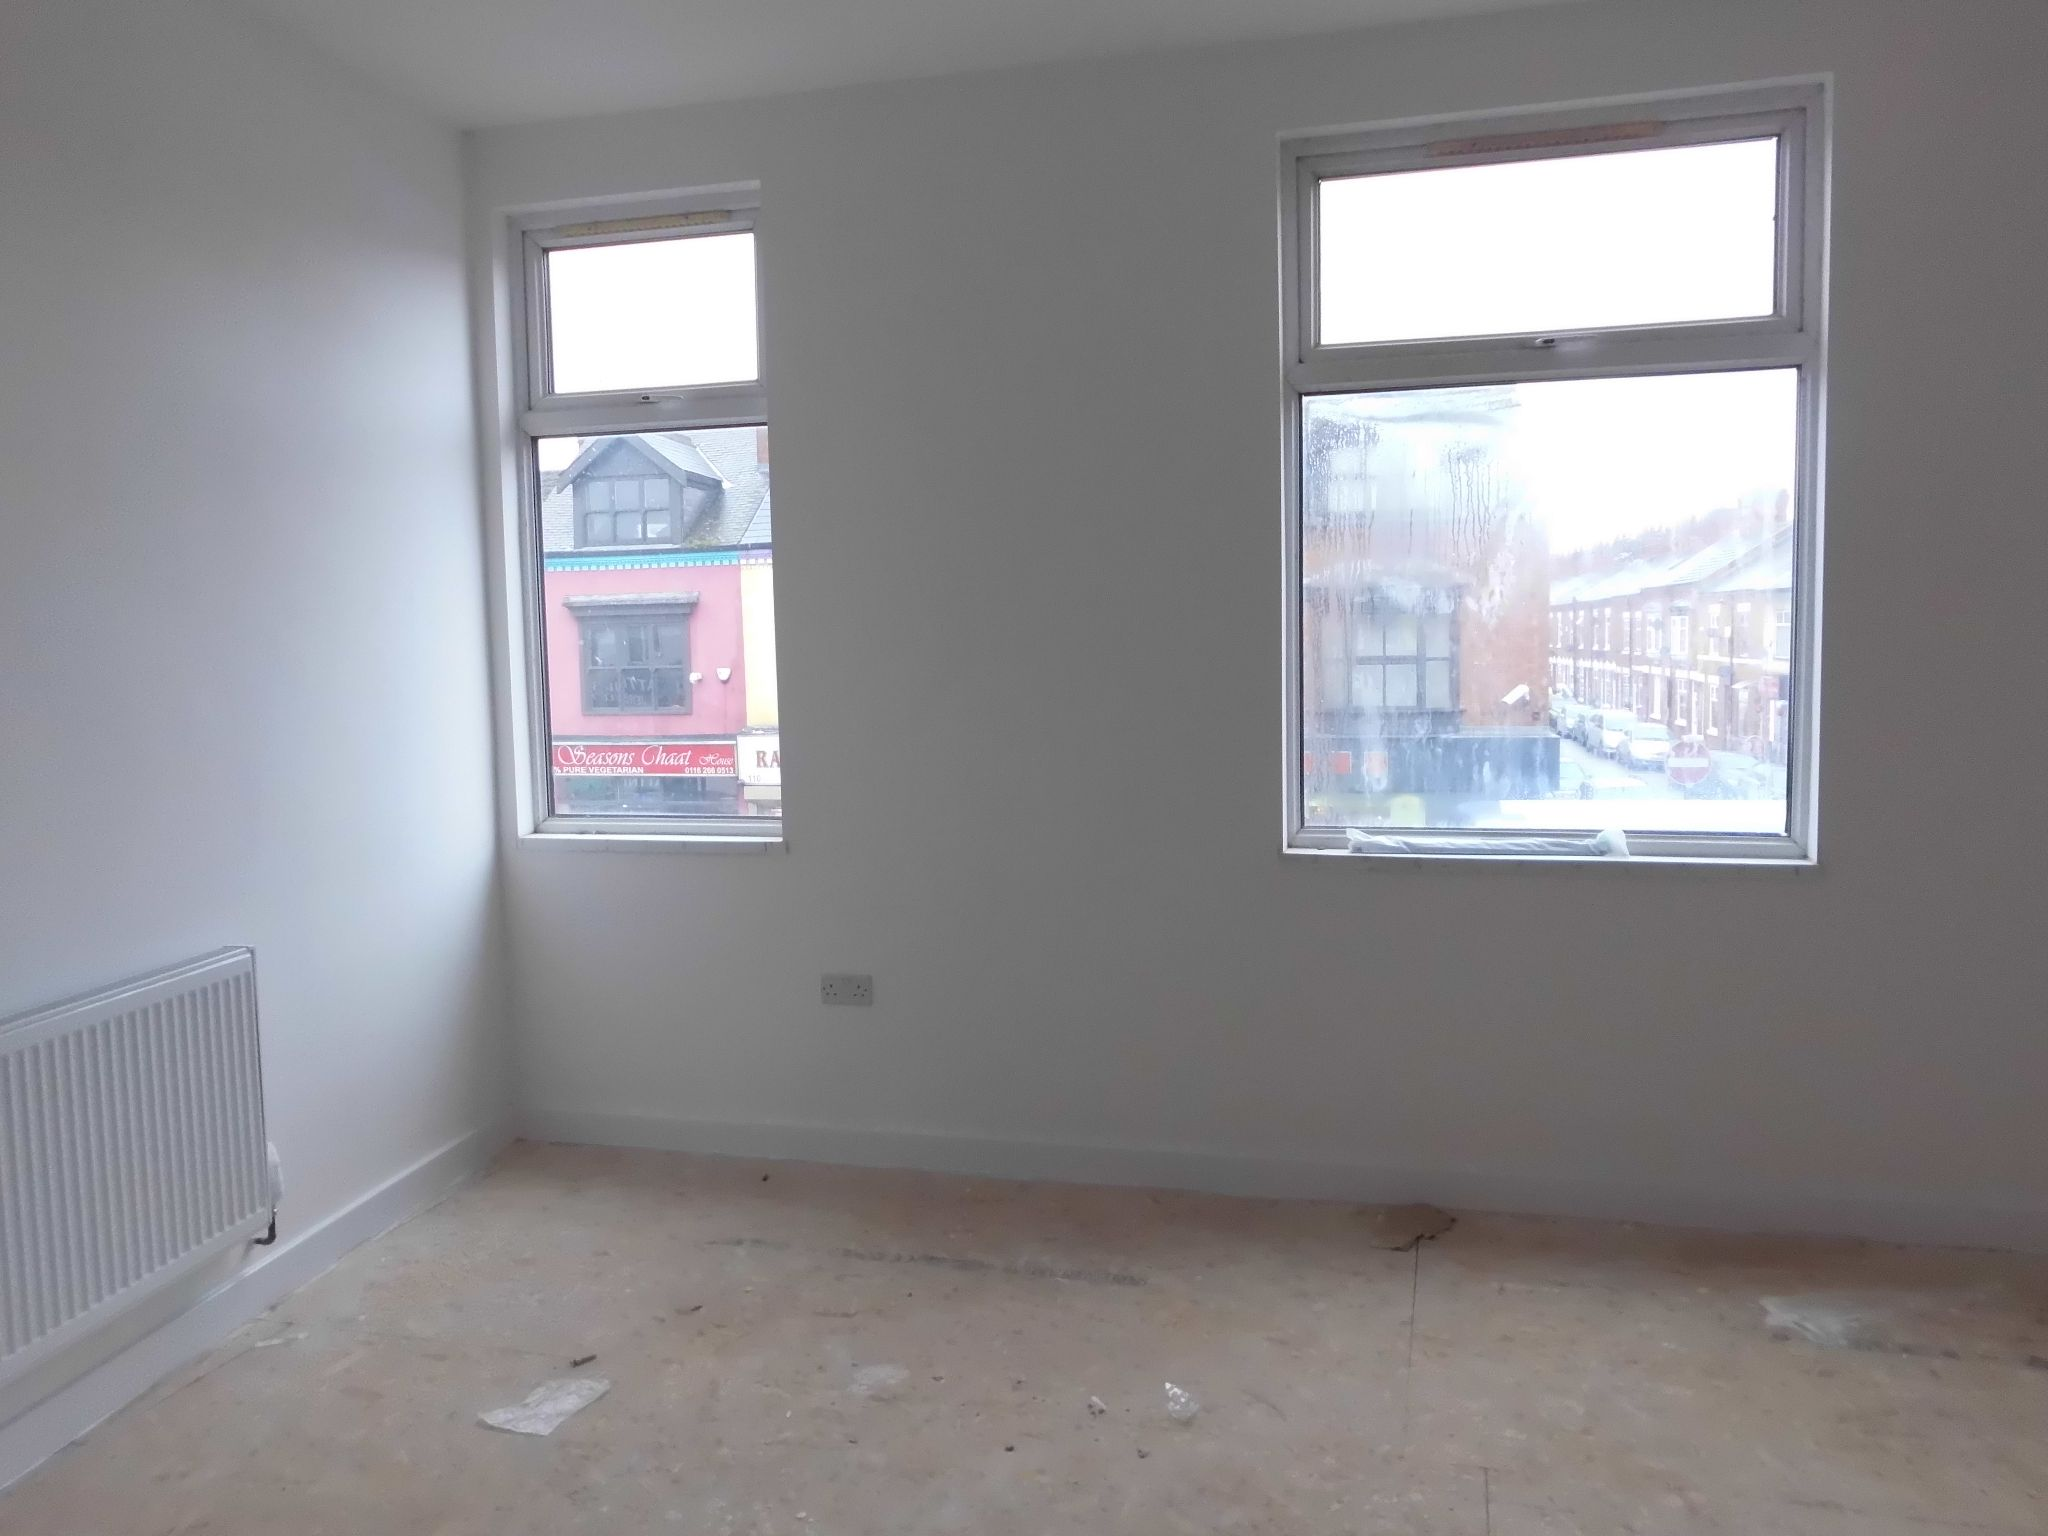 1 bedroom flat flat/apartment To Let in Leicester - Photograph 2.